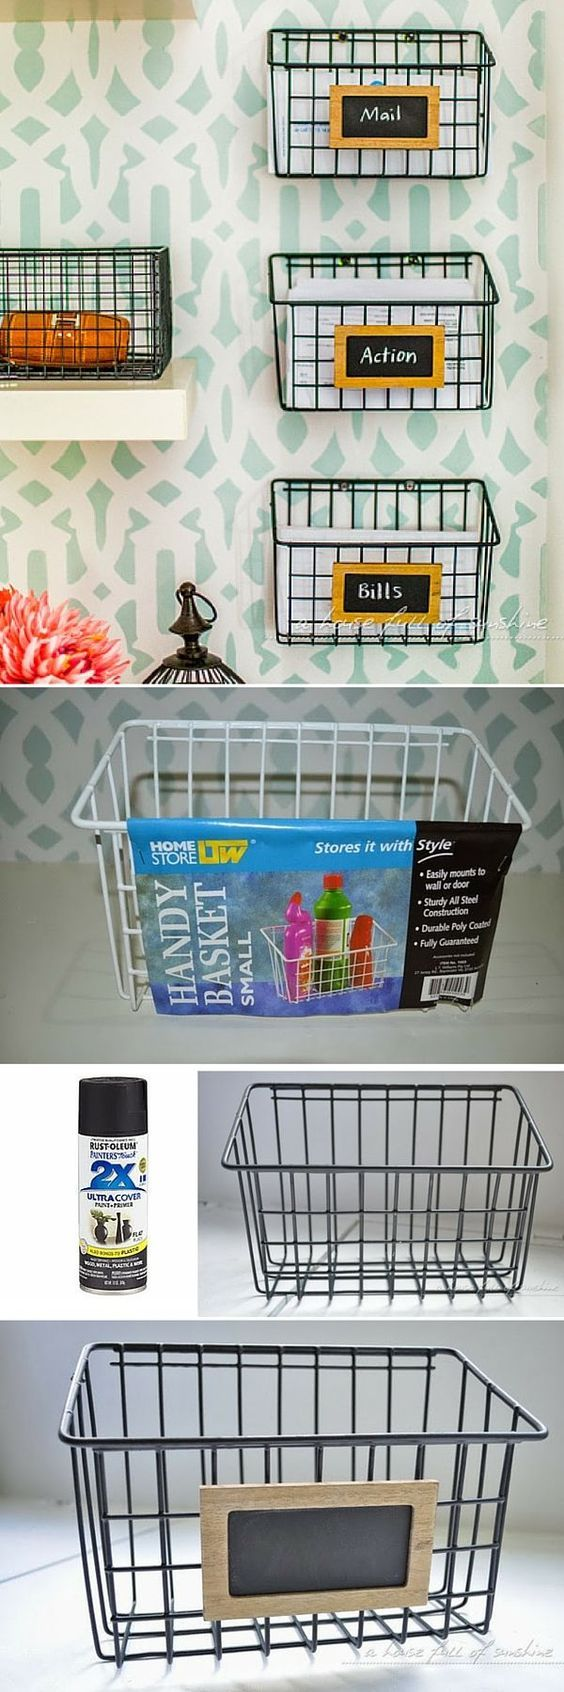 DIY - Wire Mail/Catch All Baskets   Tutorial available on site from: #crafts #decor